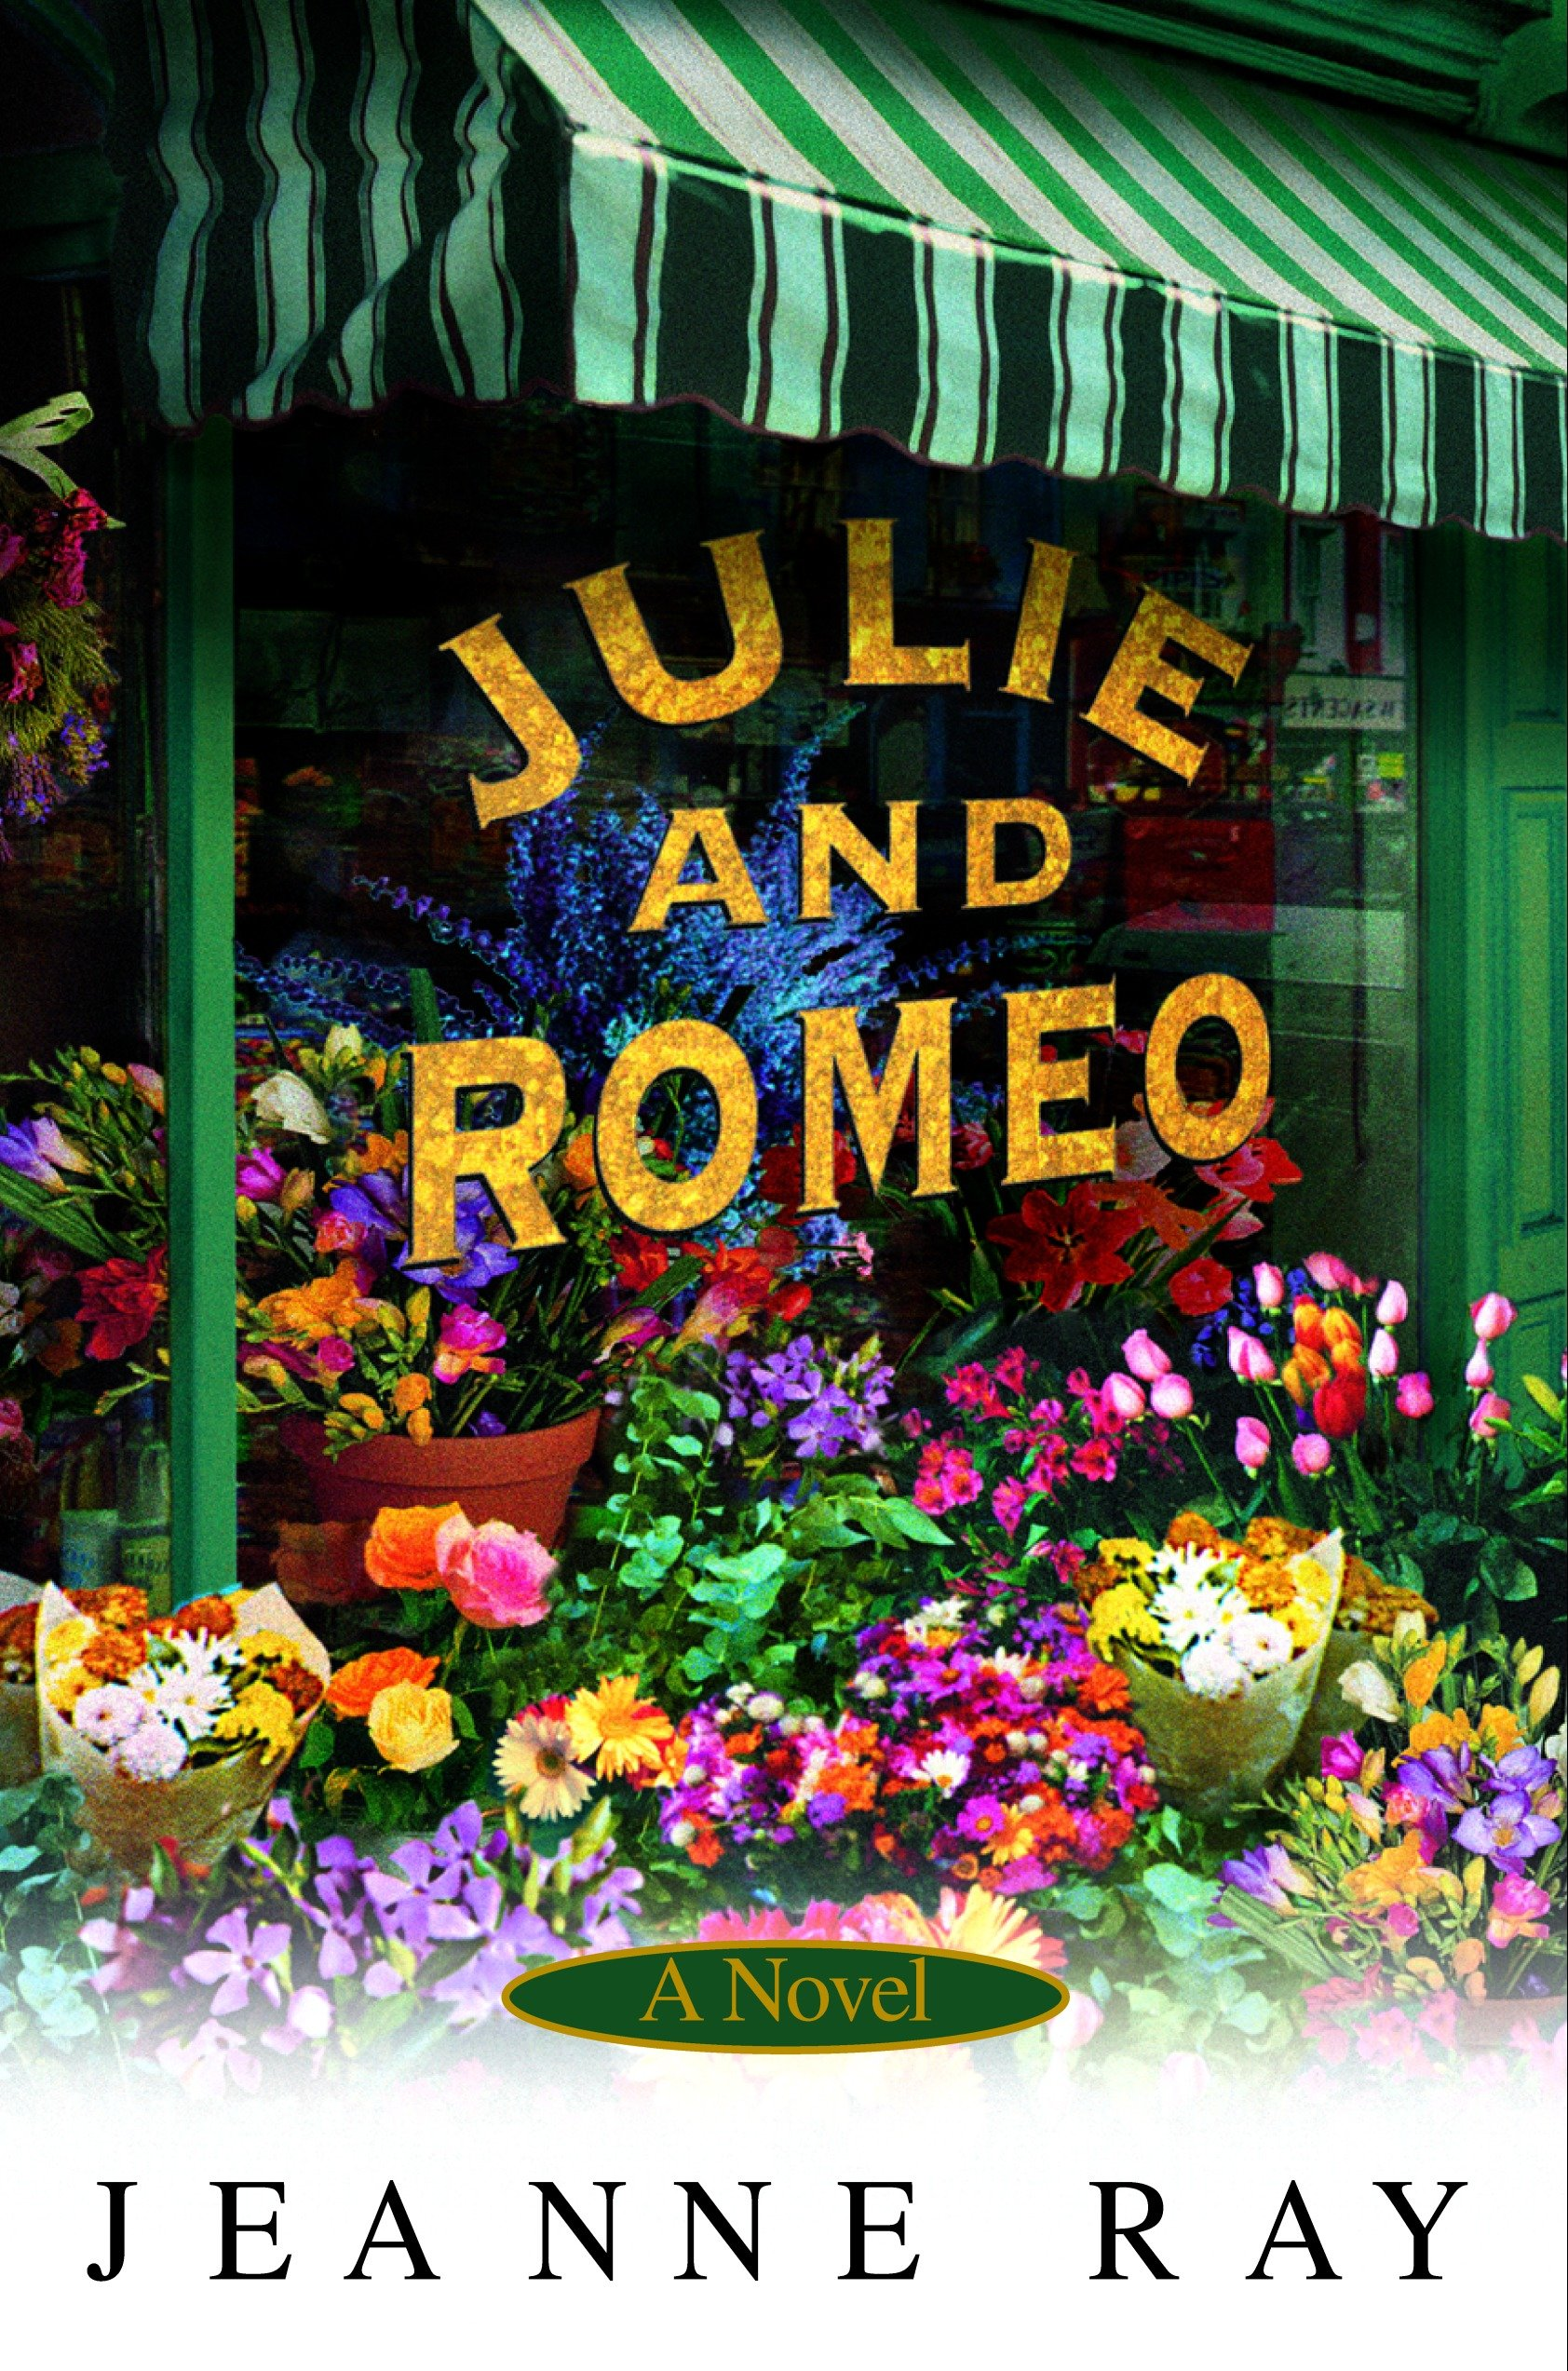 Julie and Romeo cover image